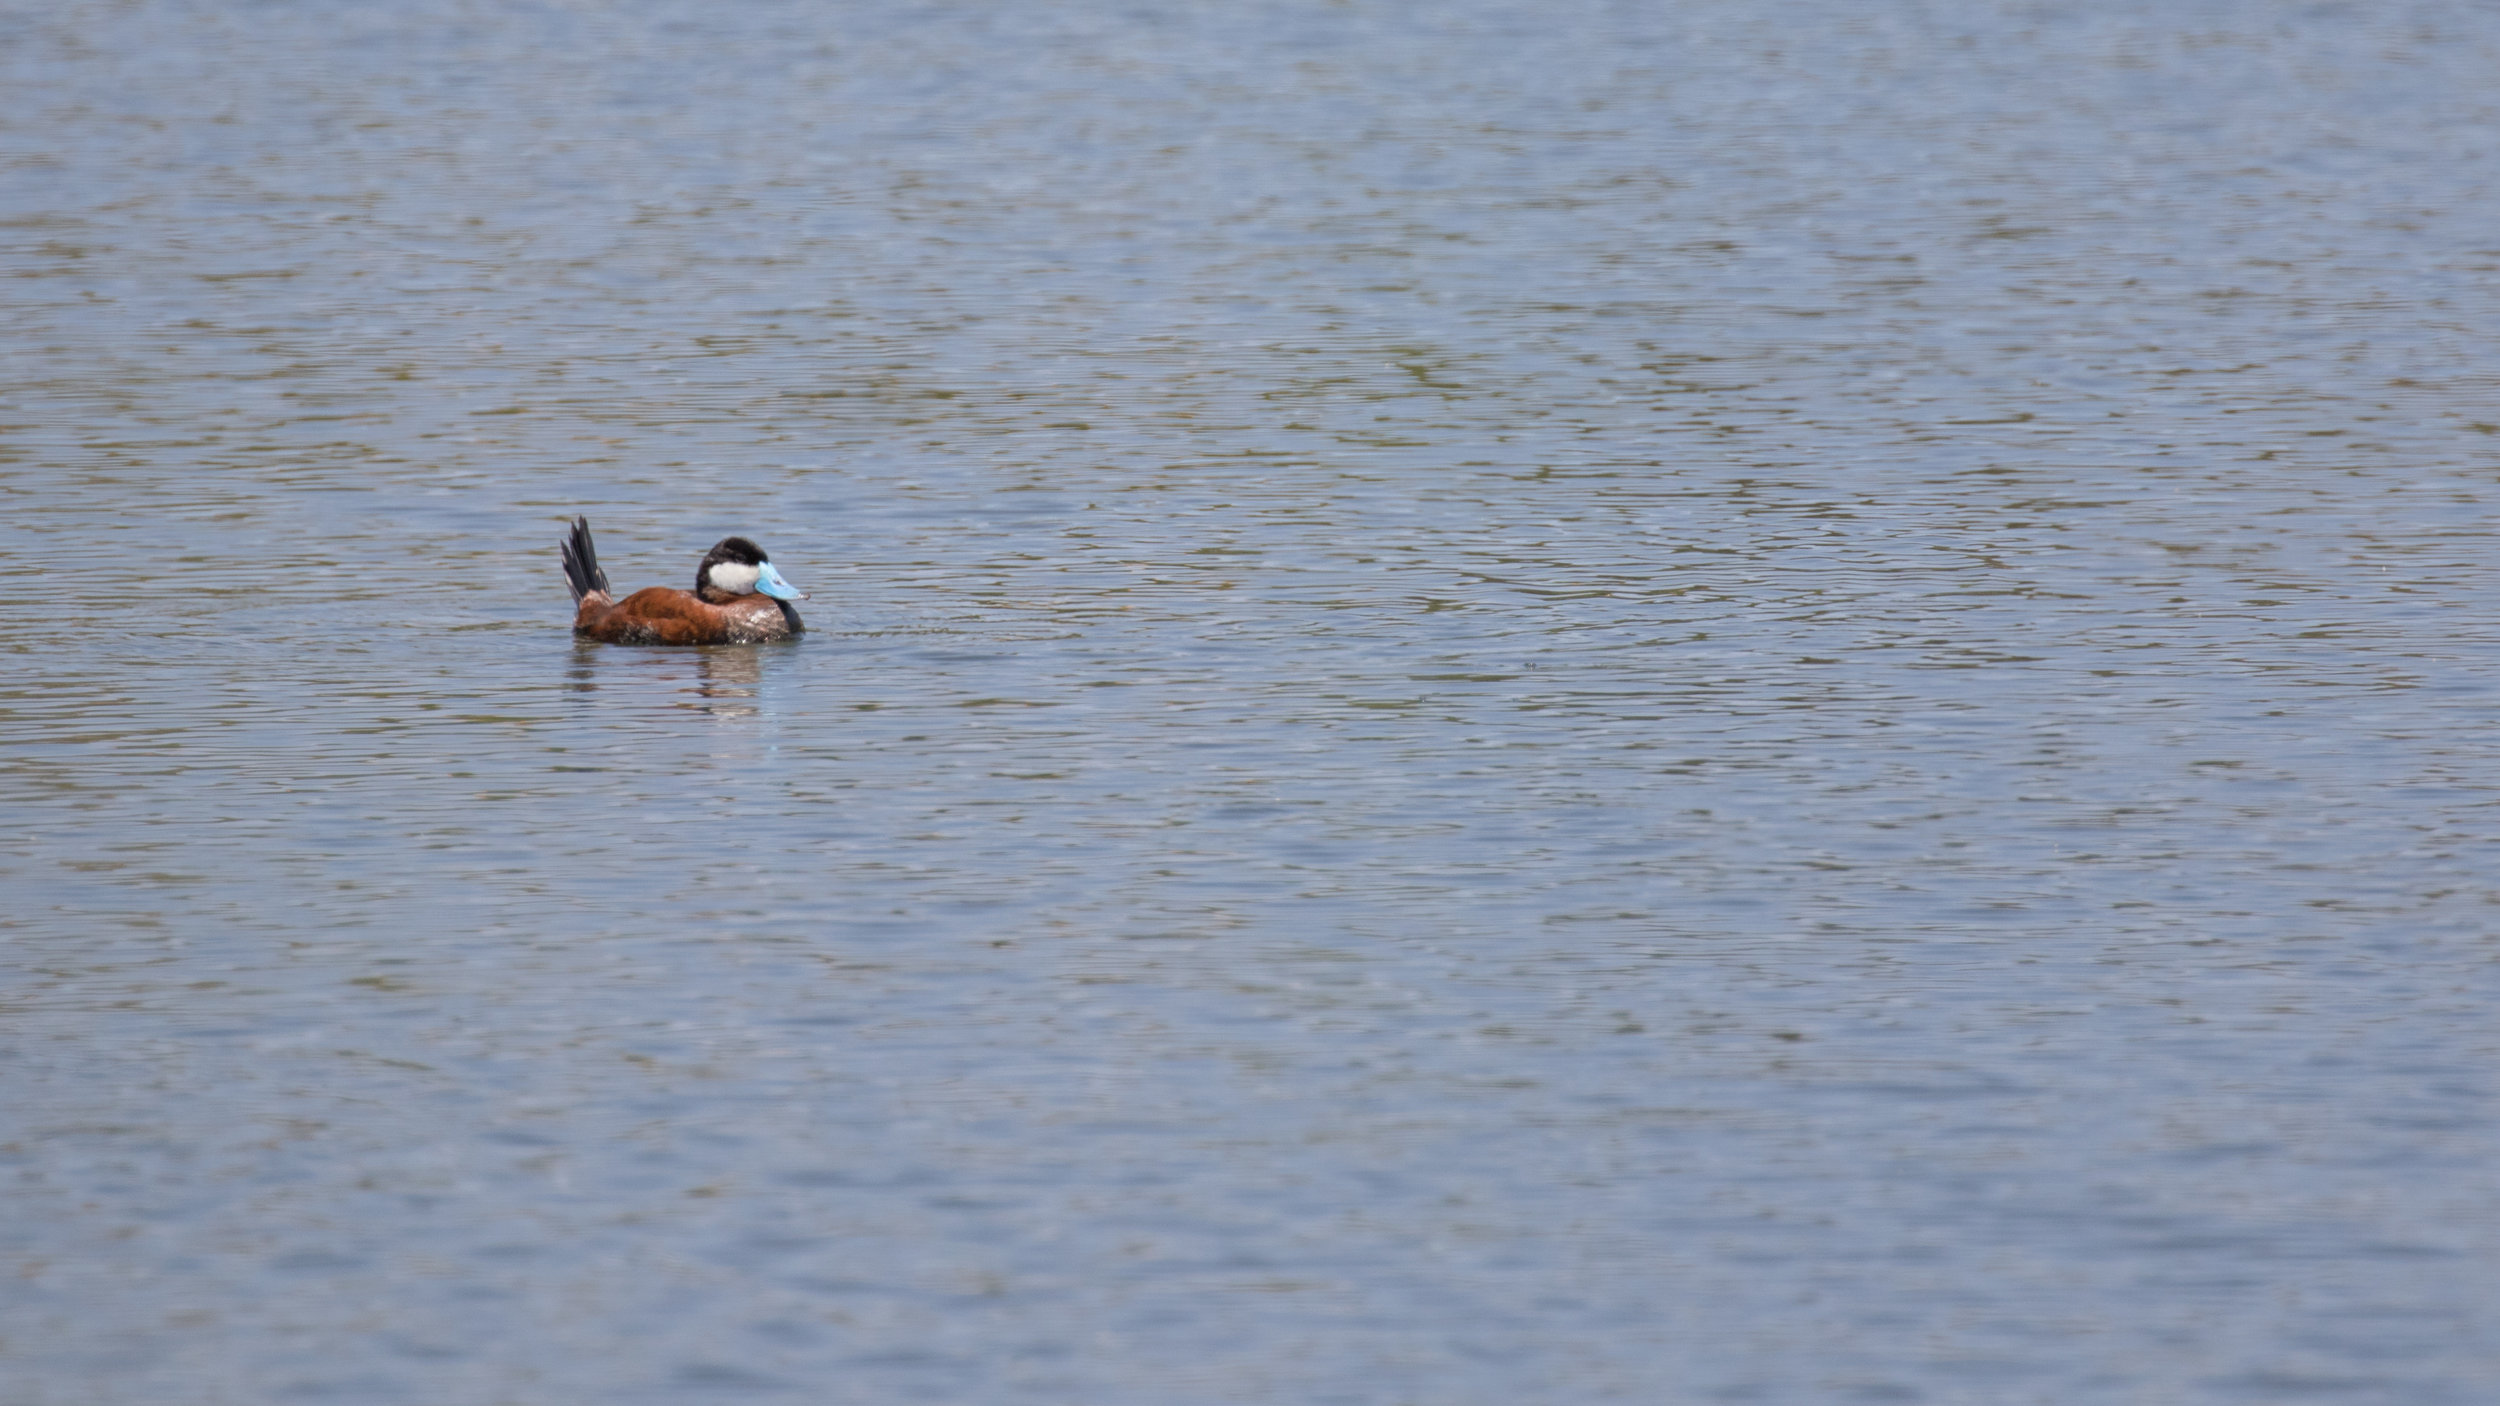 Male Ruddy Duck (Oxyura jamaicensis) in breeding plumage at the Laguna Niguel Regional Park, California. August 2016. Not baited. Not called in.